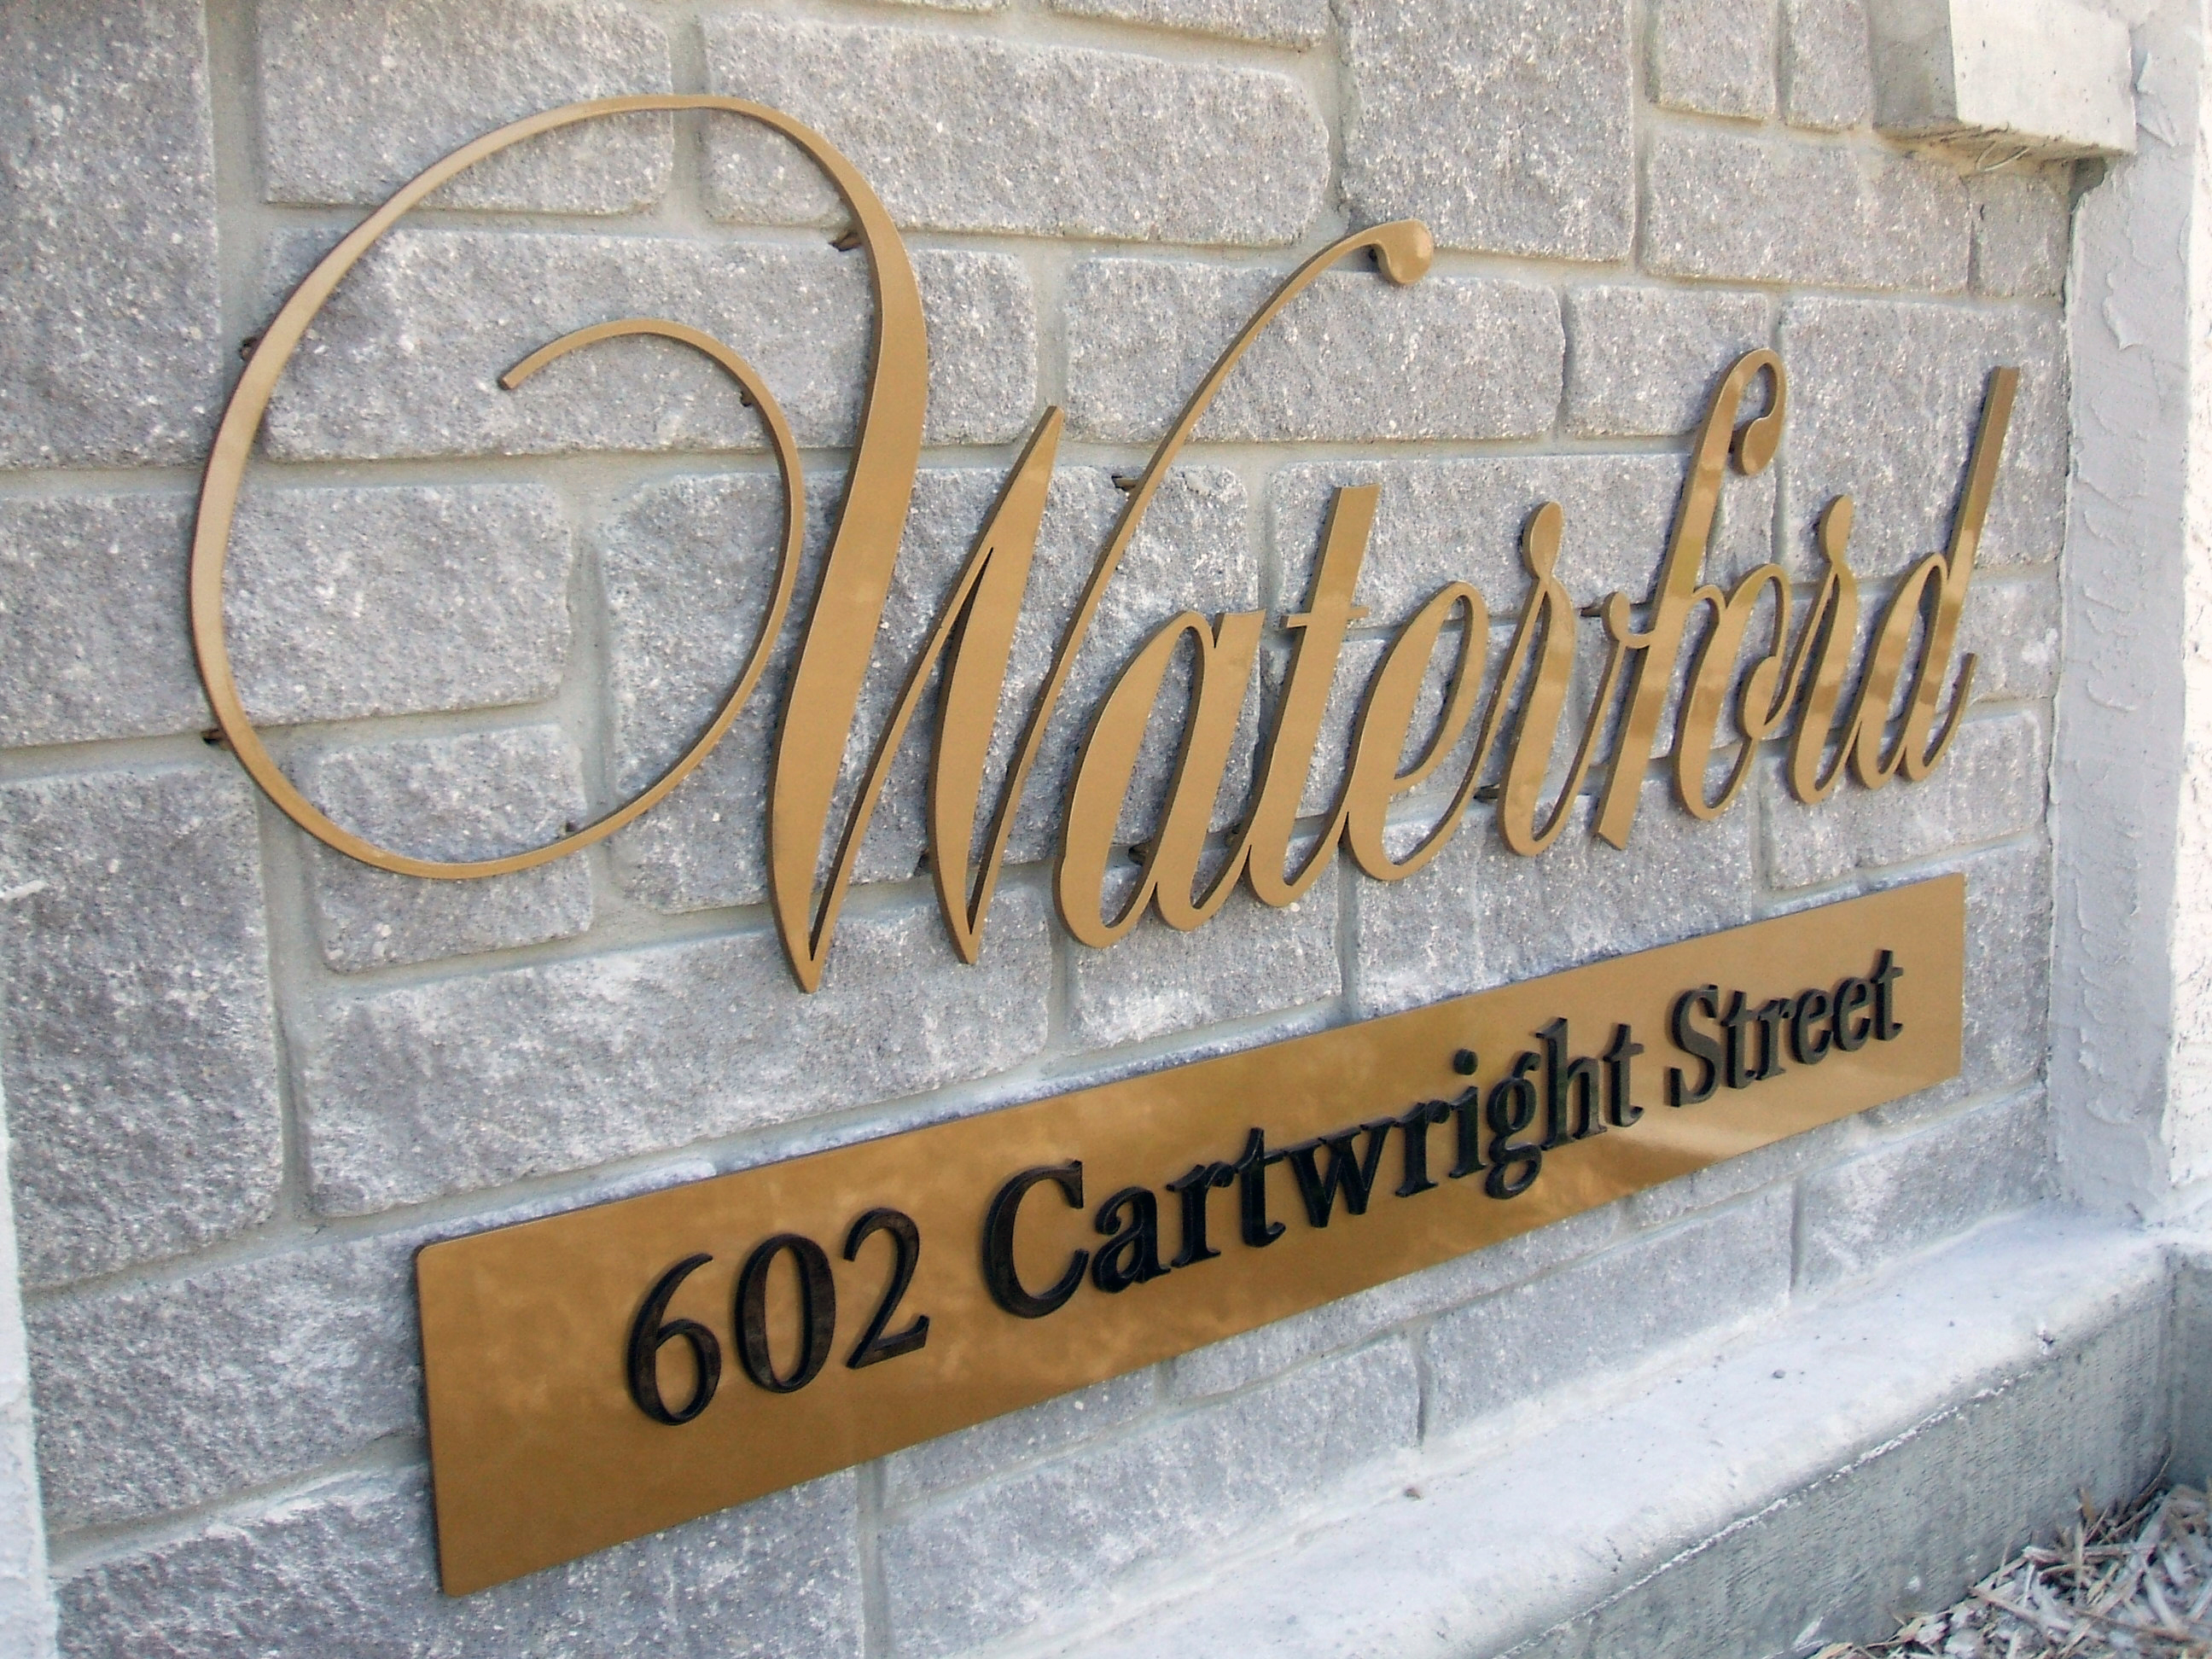 potash-one-and-waterford-011